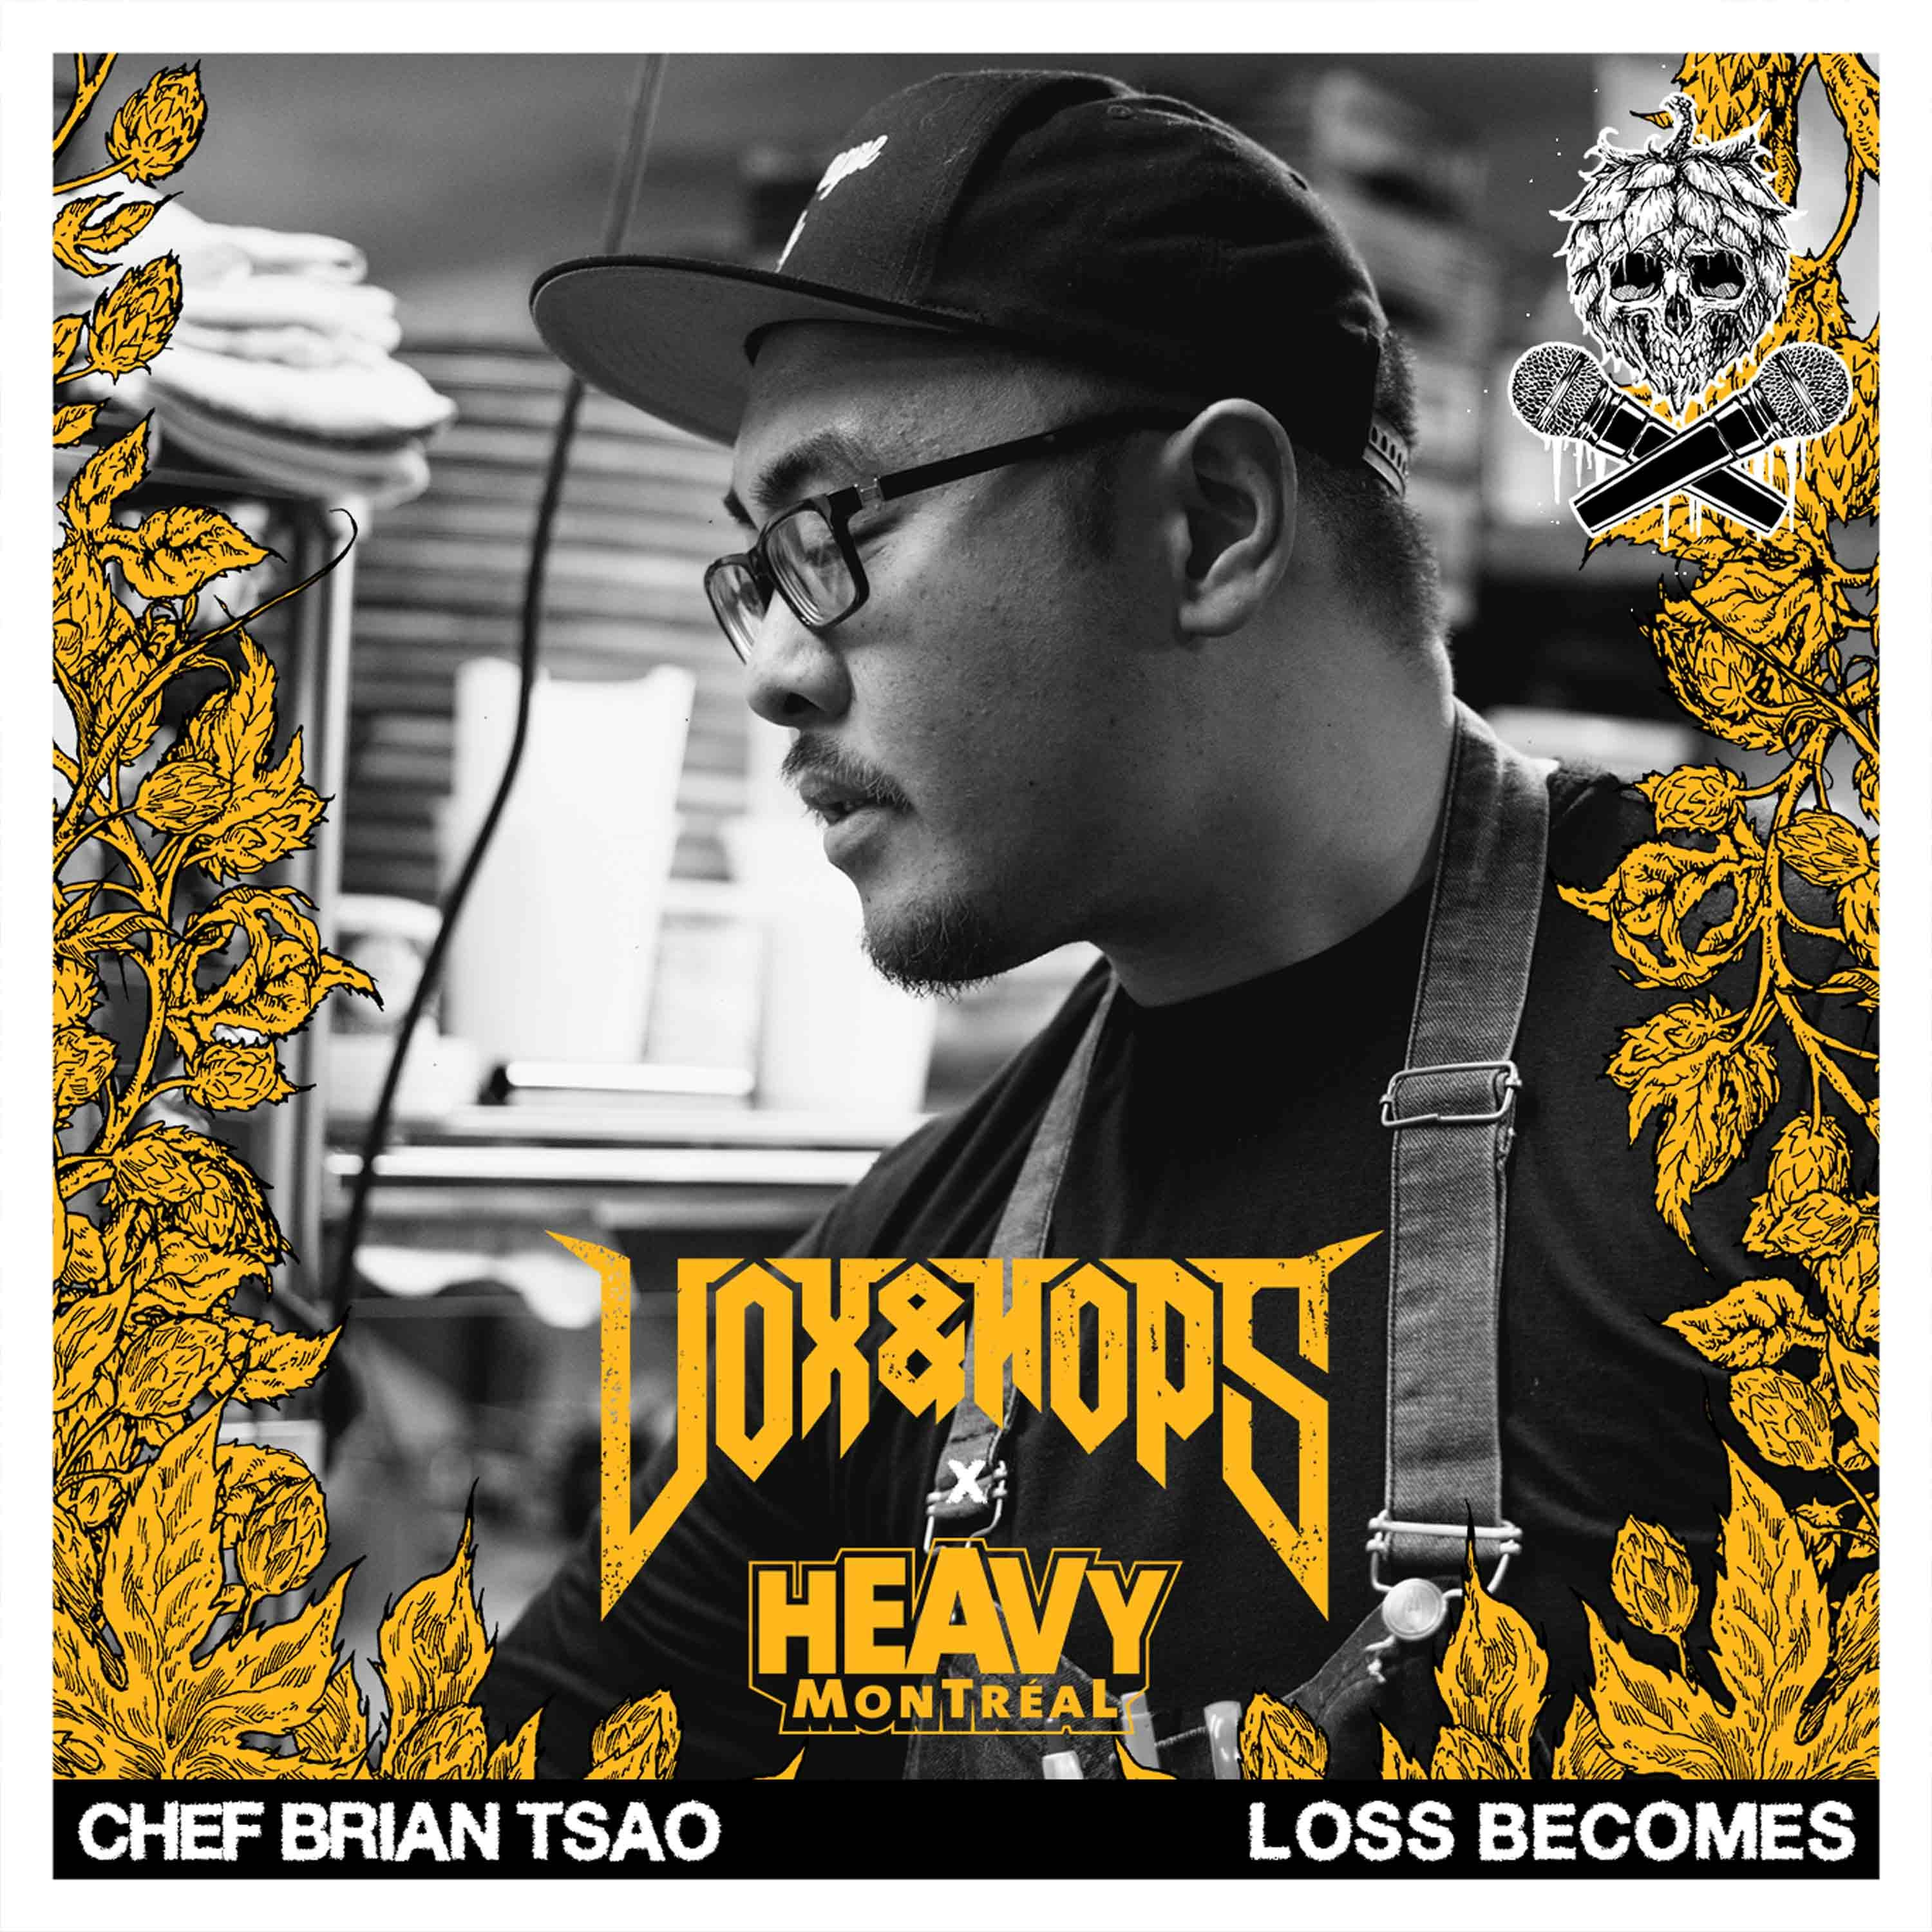 Killer Food For Backstage Passes with Chef Brian Tsao of Loss Becomes